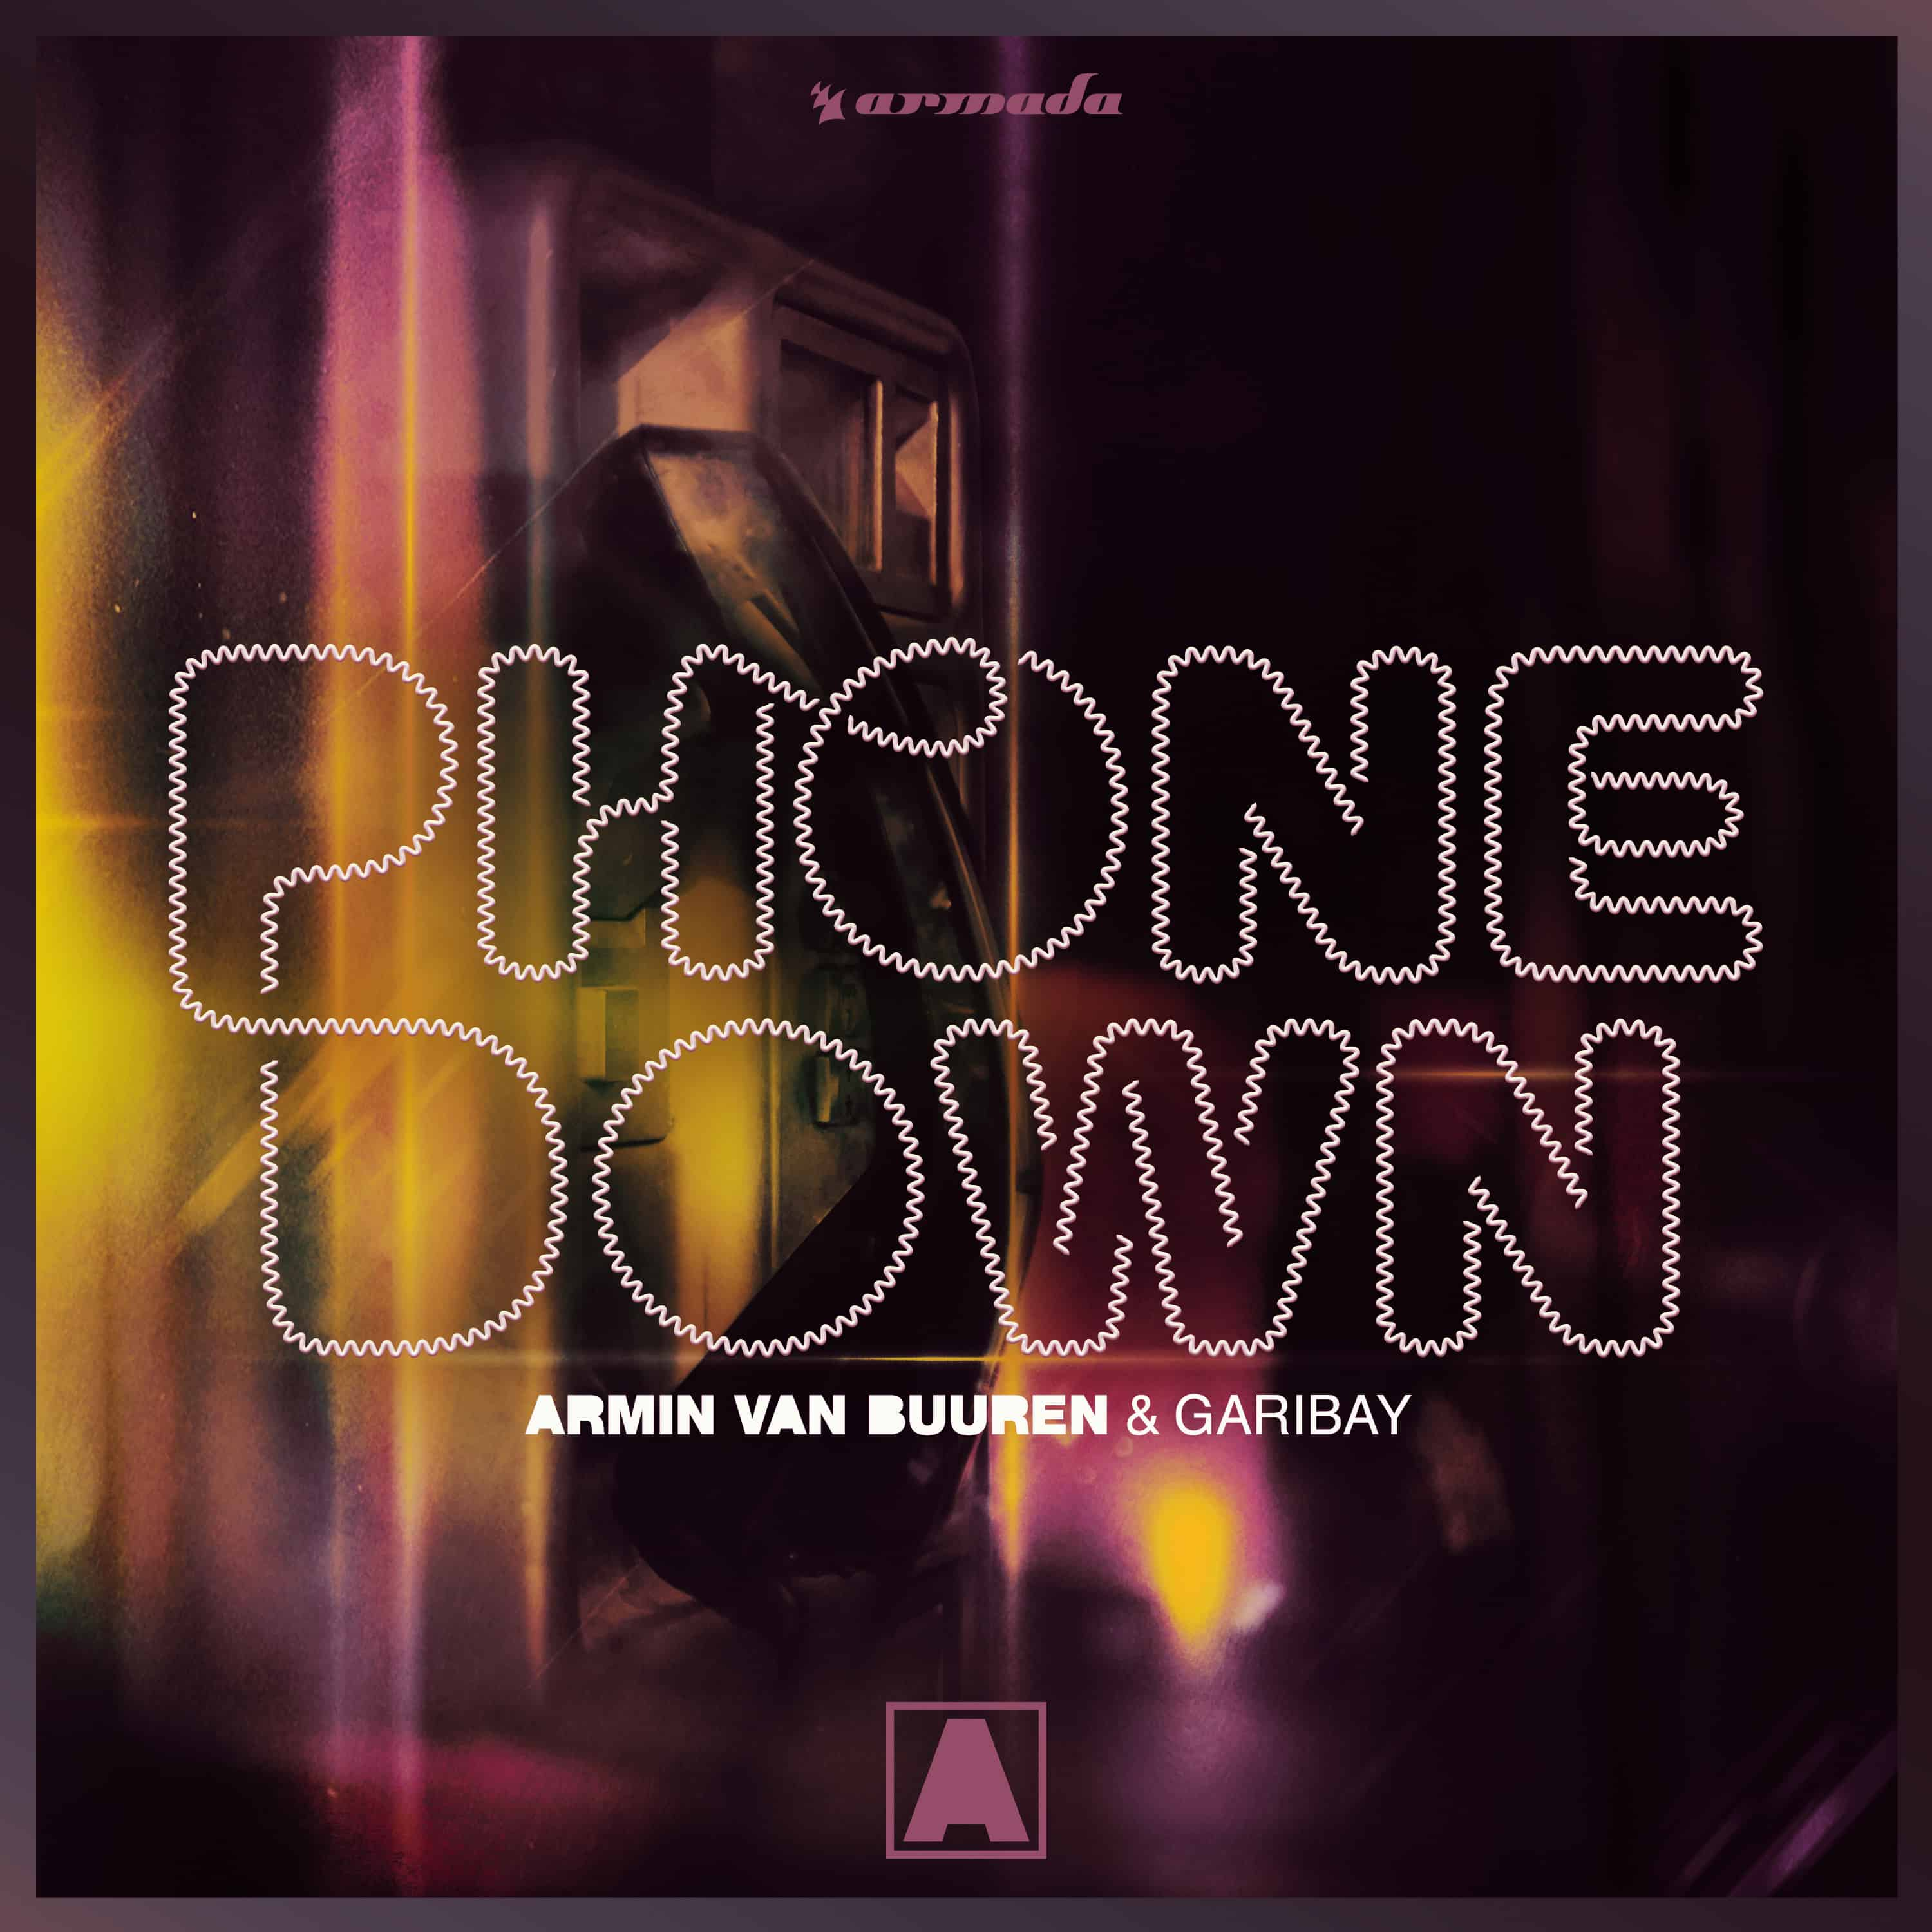 Armin van Buuren and Garibay reach new heights with hit single: Phone Down